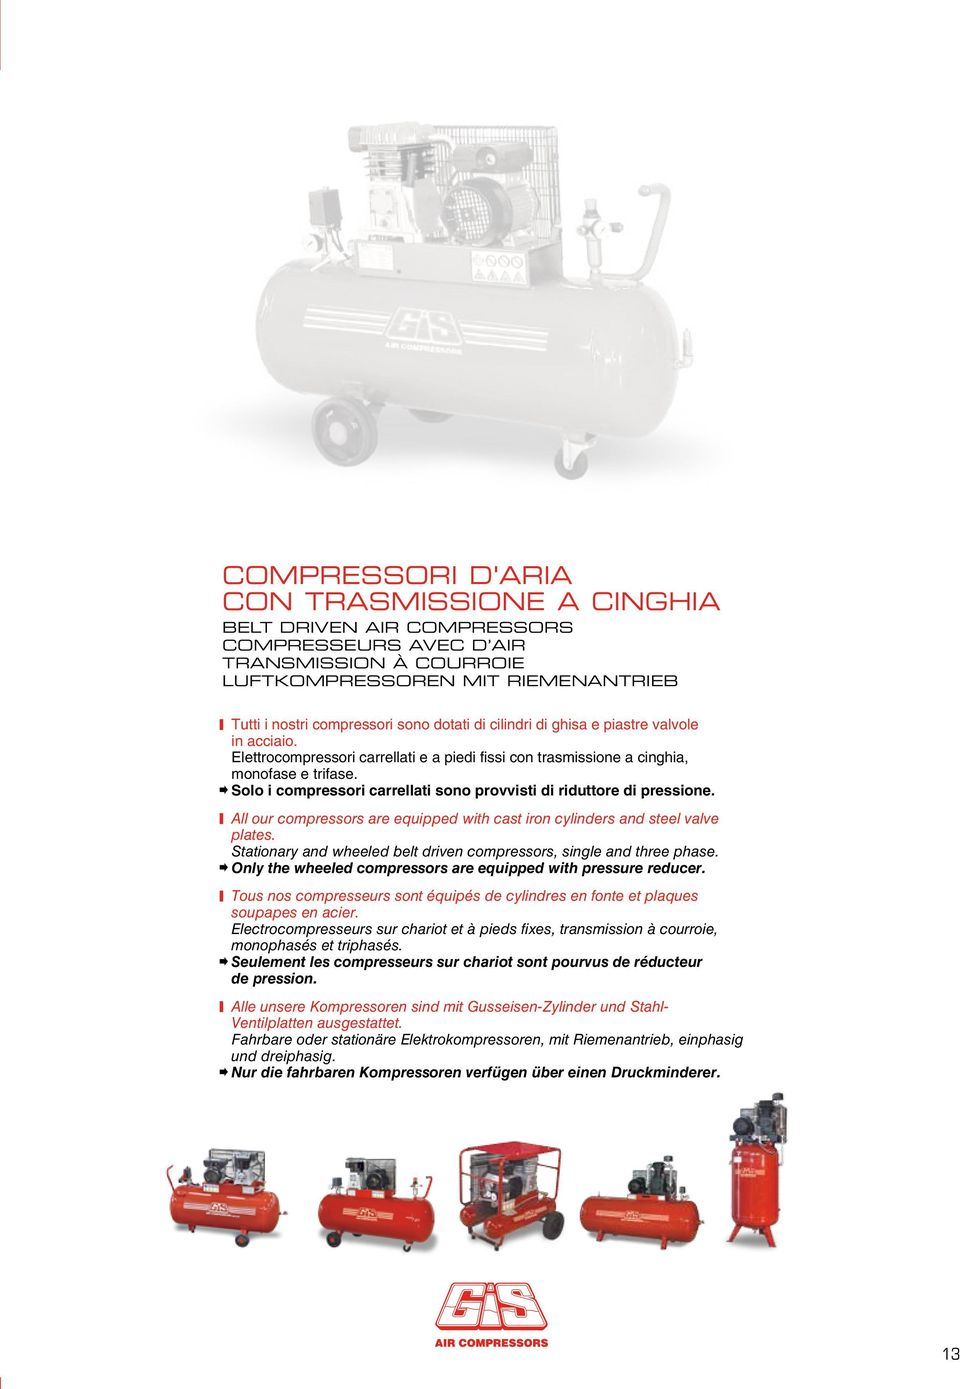 Solo i compressori carrellati sono provvisti di riduttore di pressione. All our compressors are equipped with cast iron cylinders and steel valve plates.